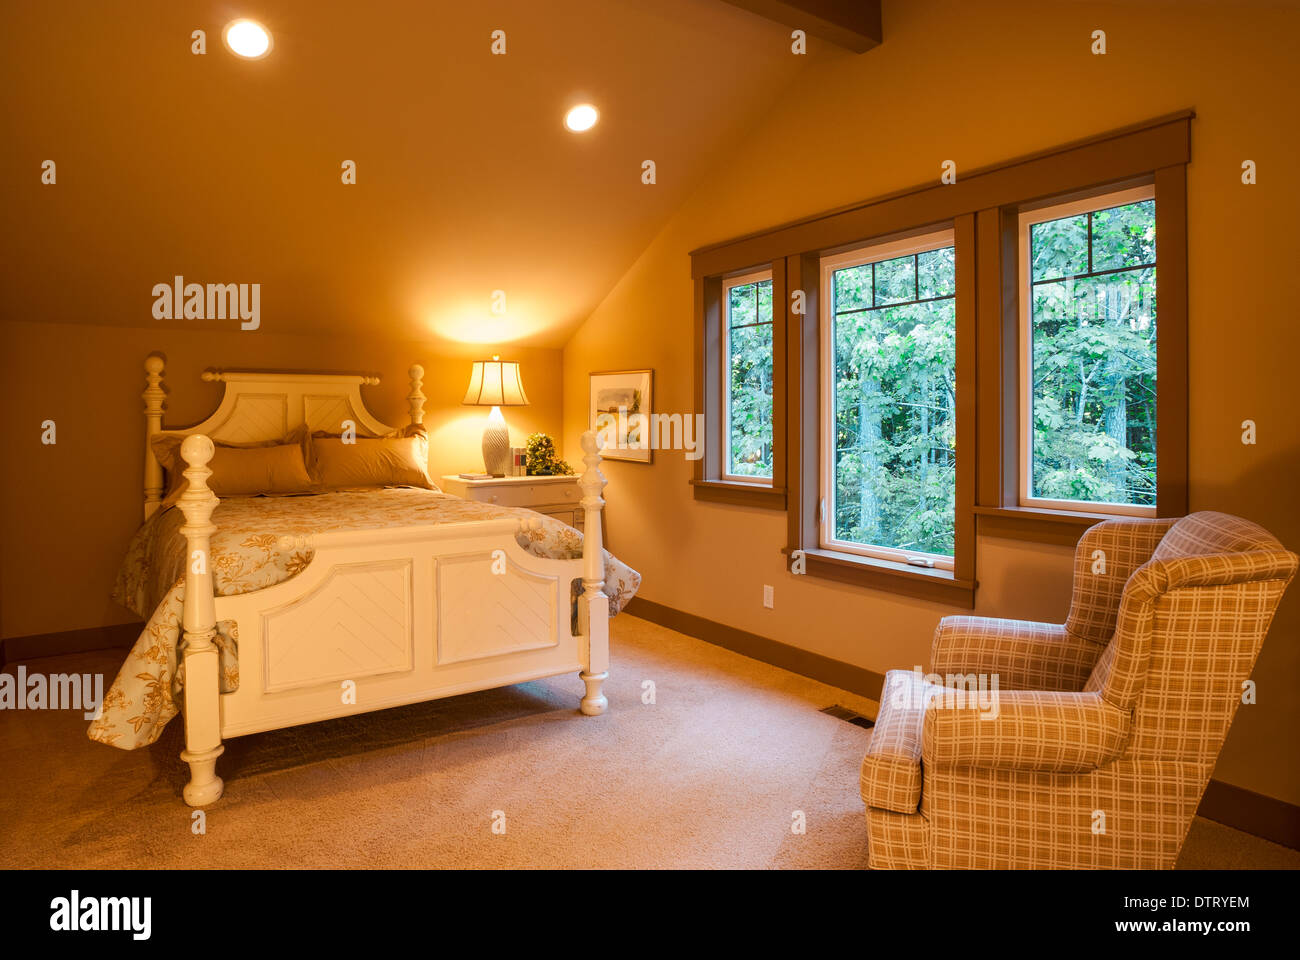 Small bedroom in luxury home with bed, chair, and nightstand, showing woods outside of window. - Stock Image